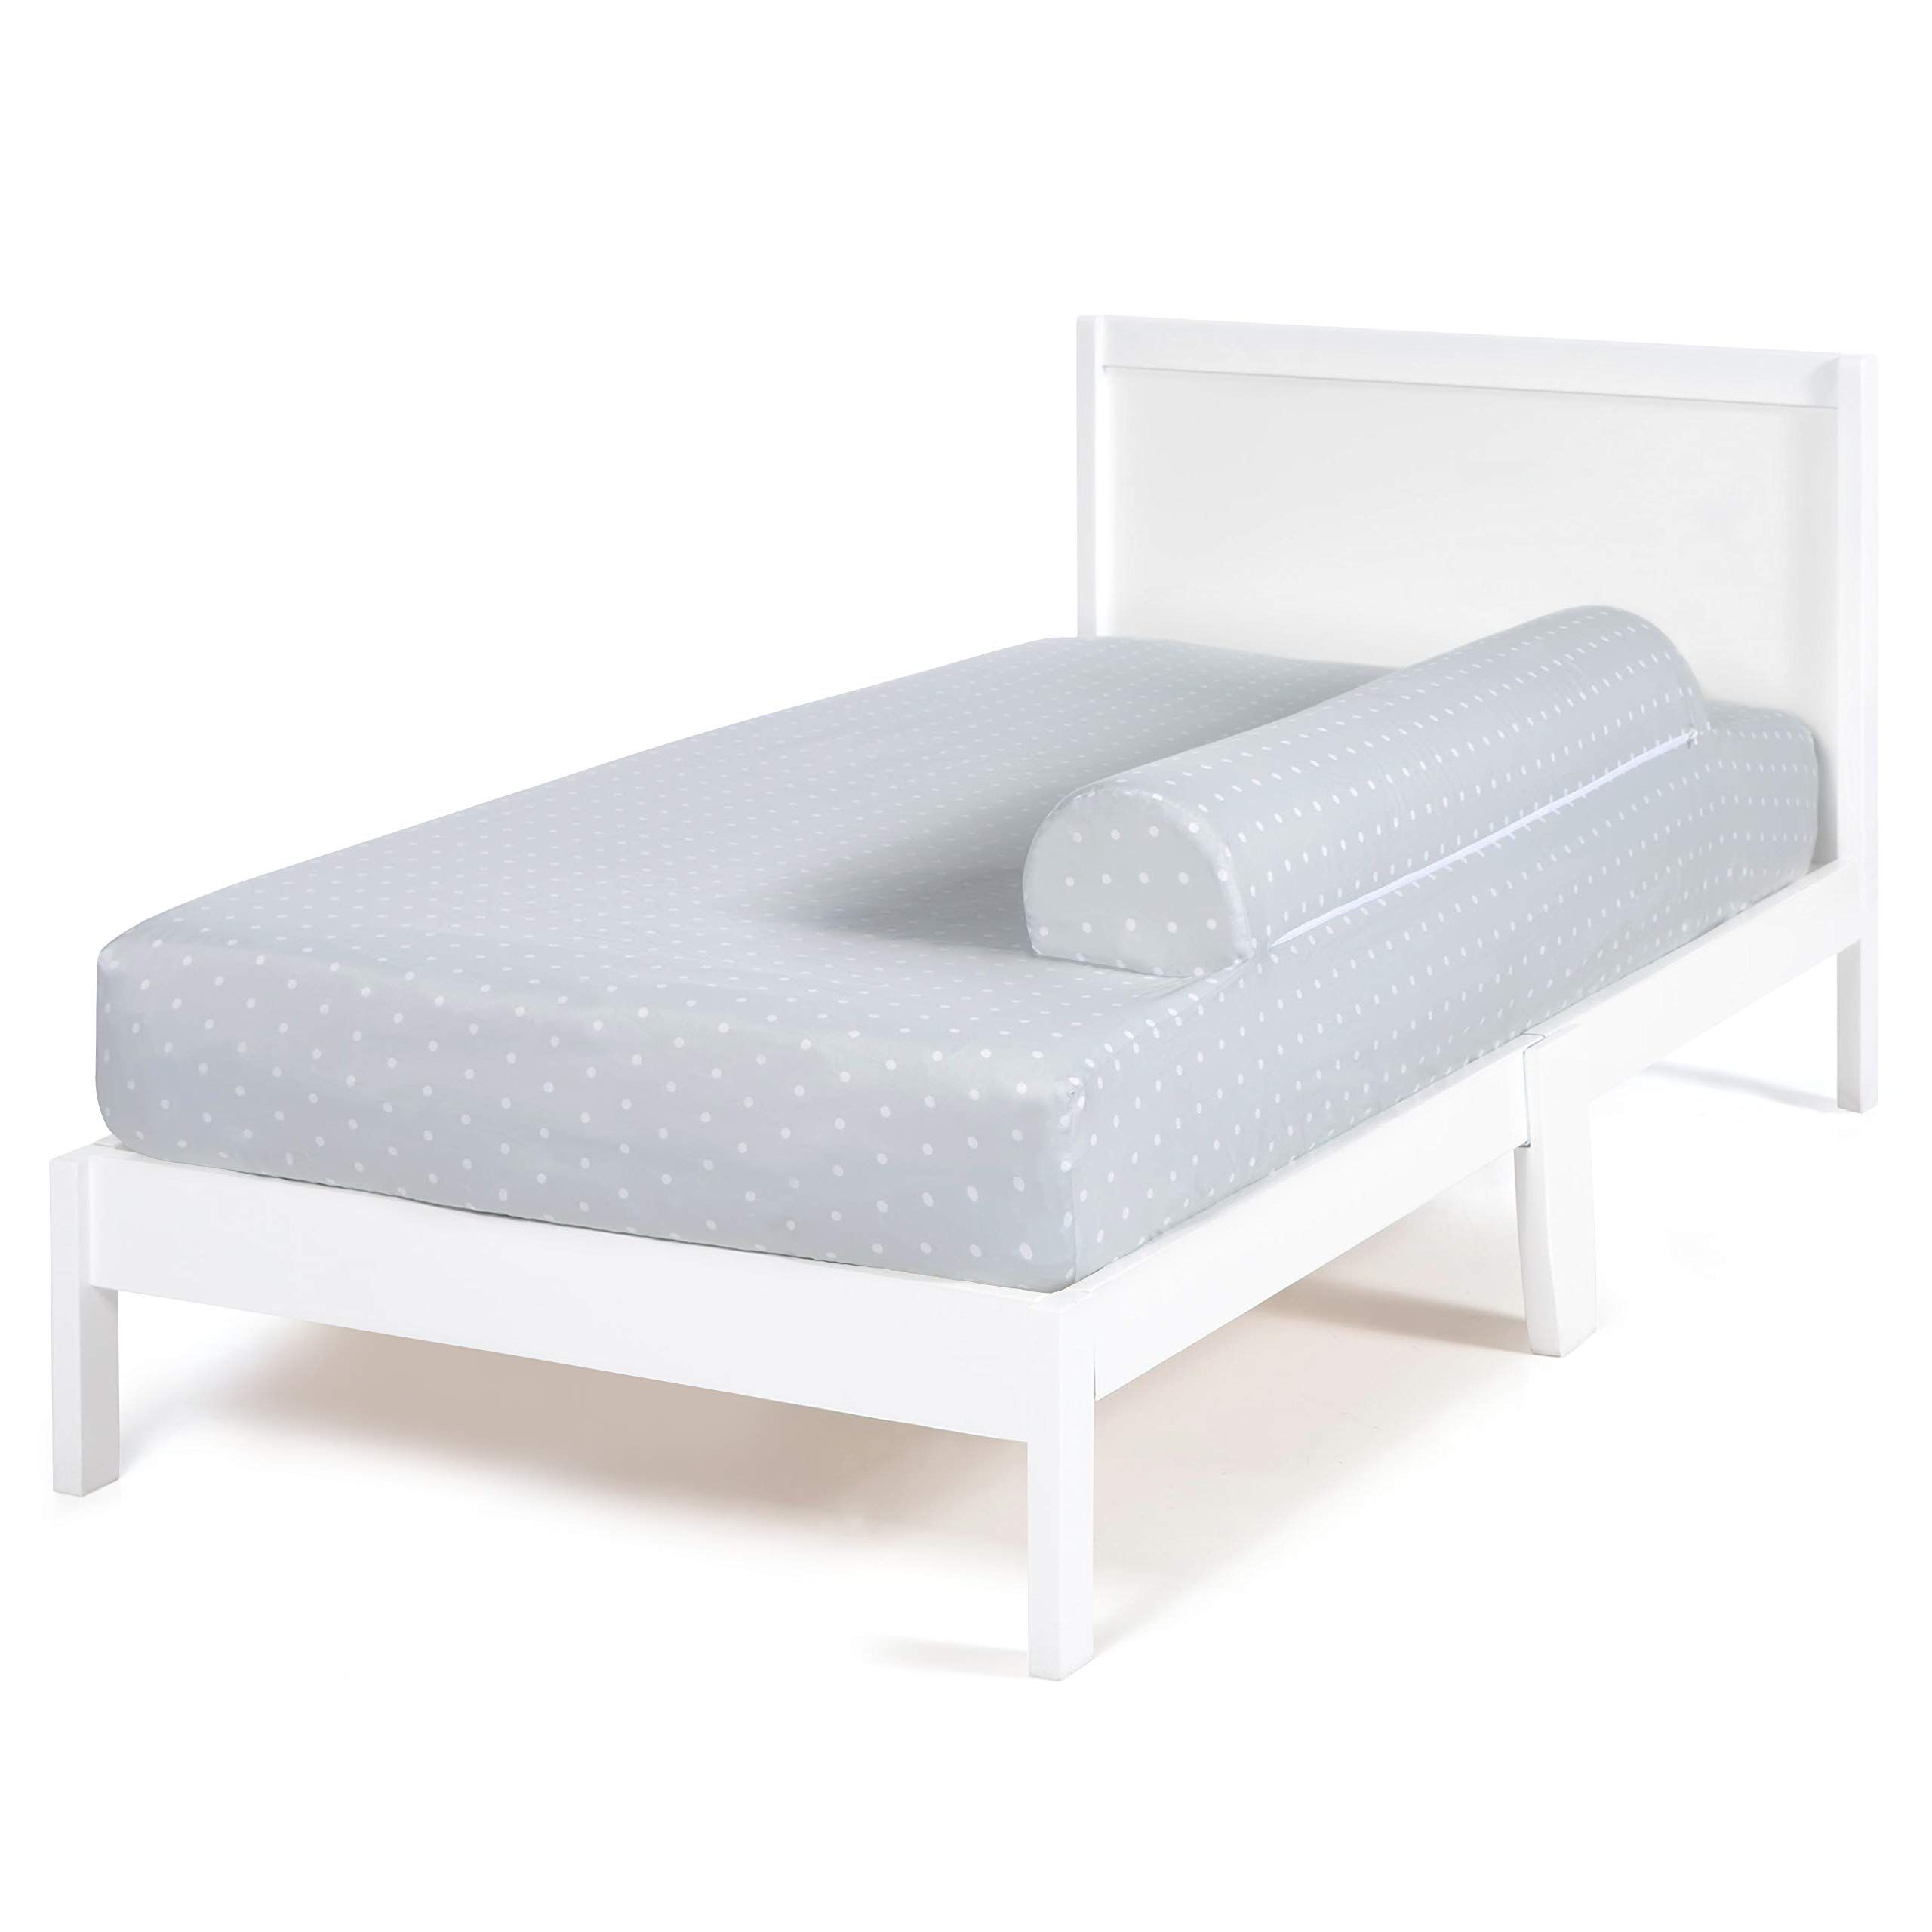 Milliard Bed Bumper With Attached Sheet For Toddler Bed Foam